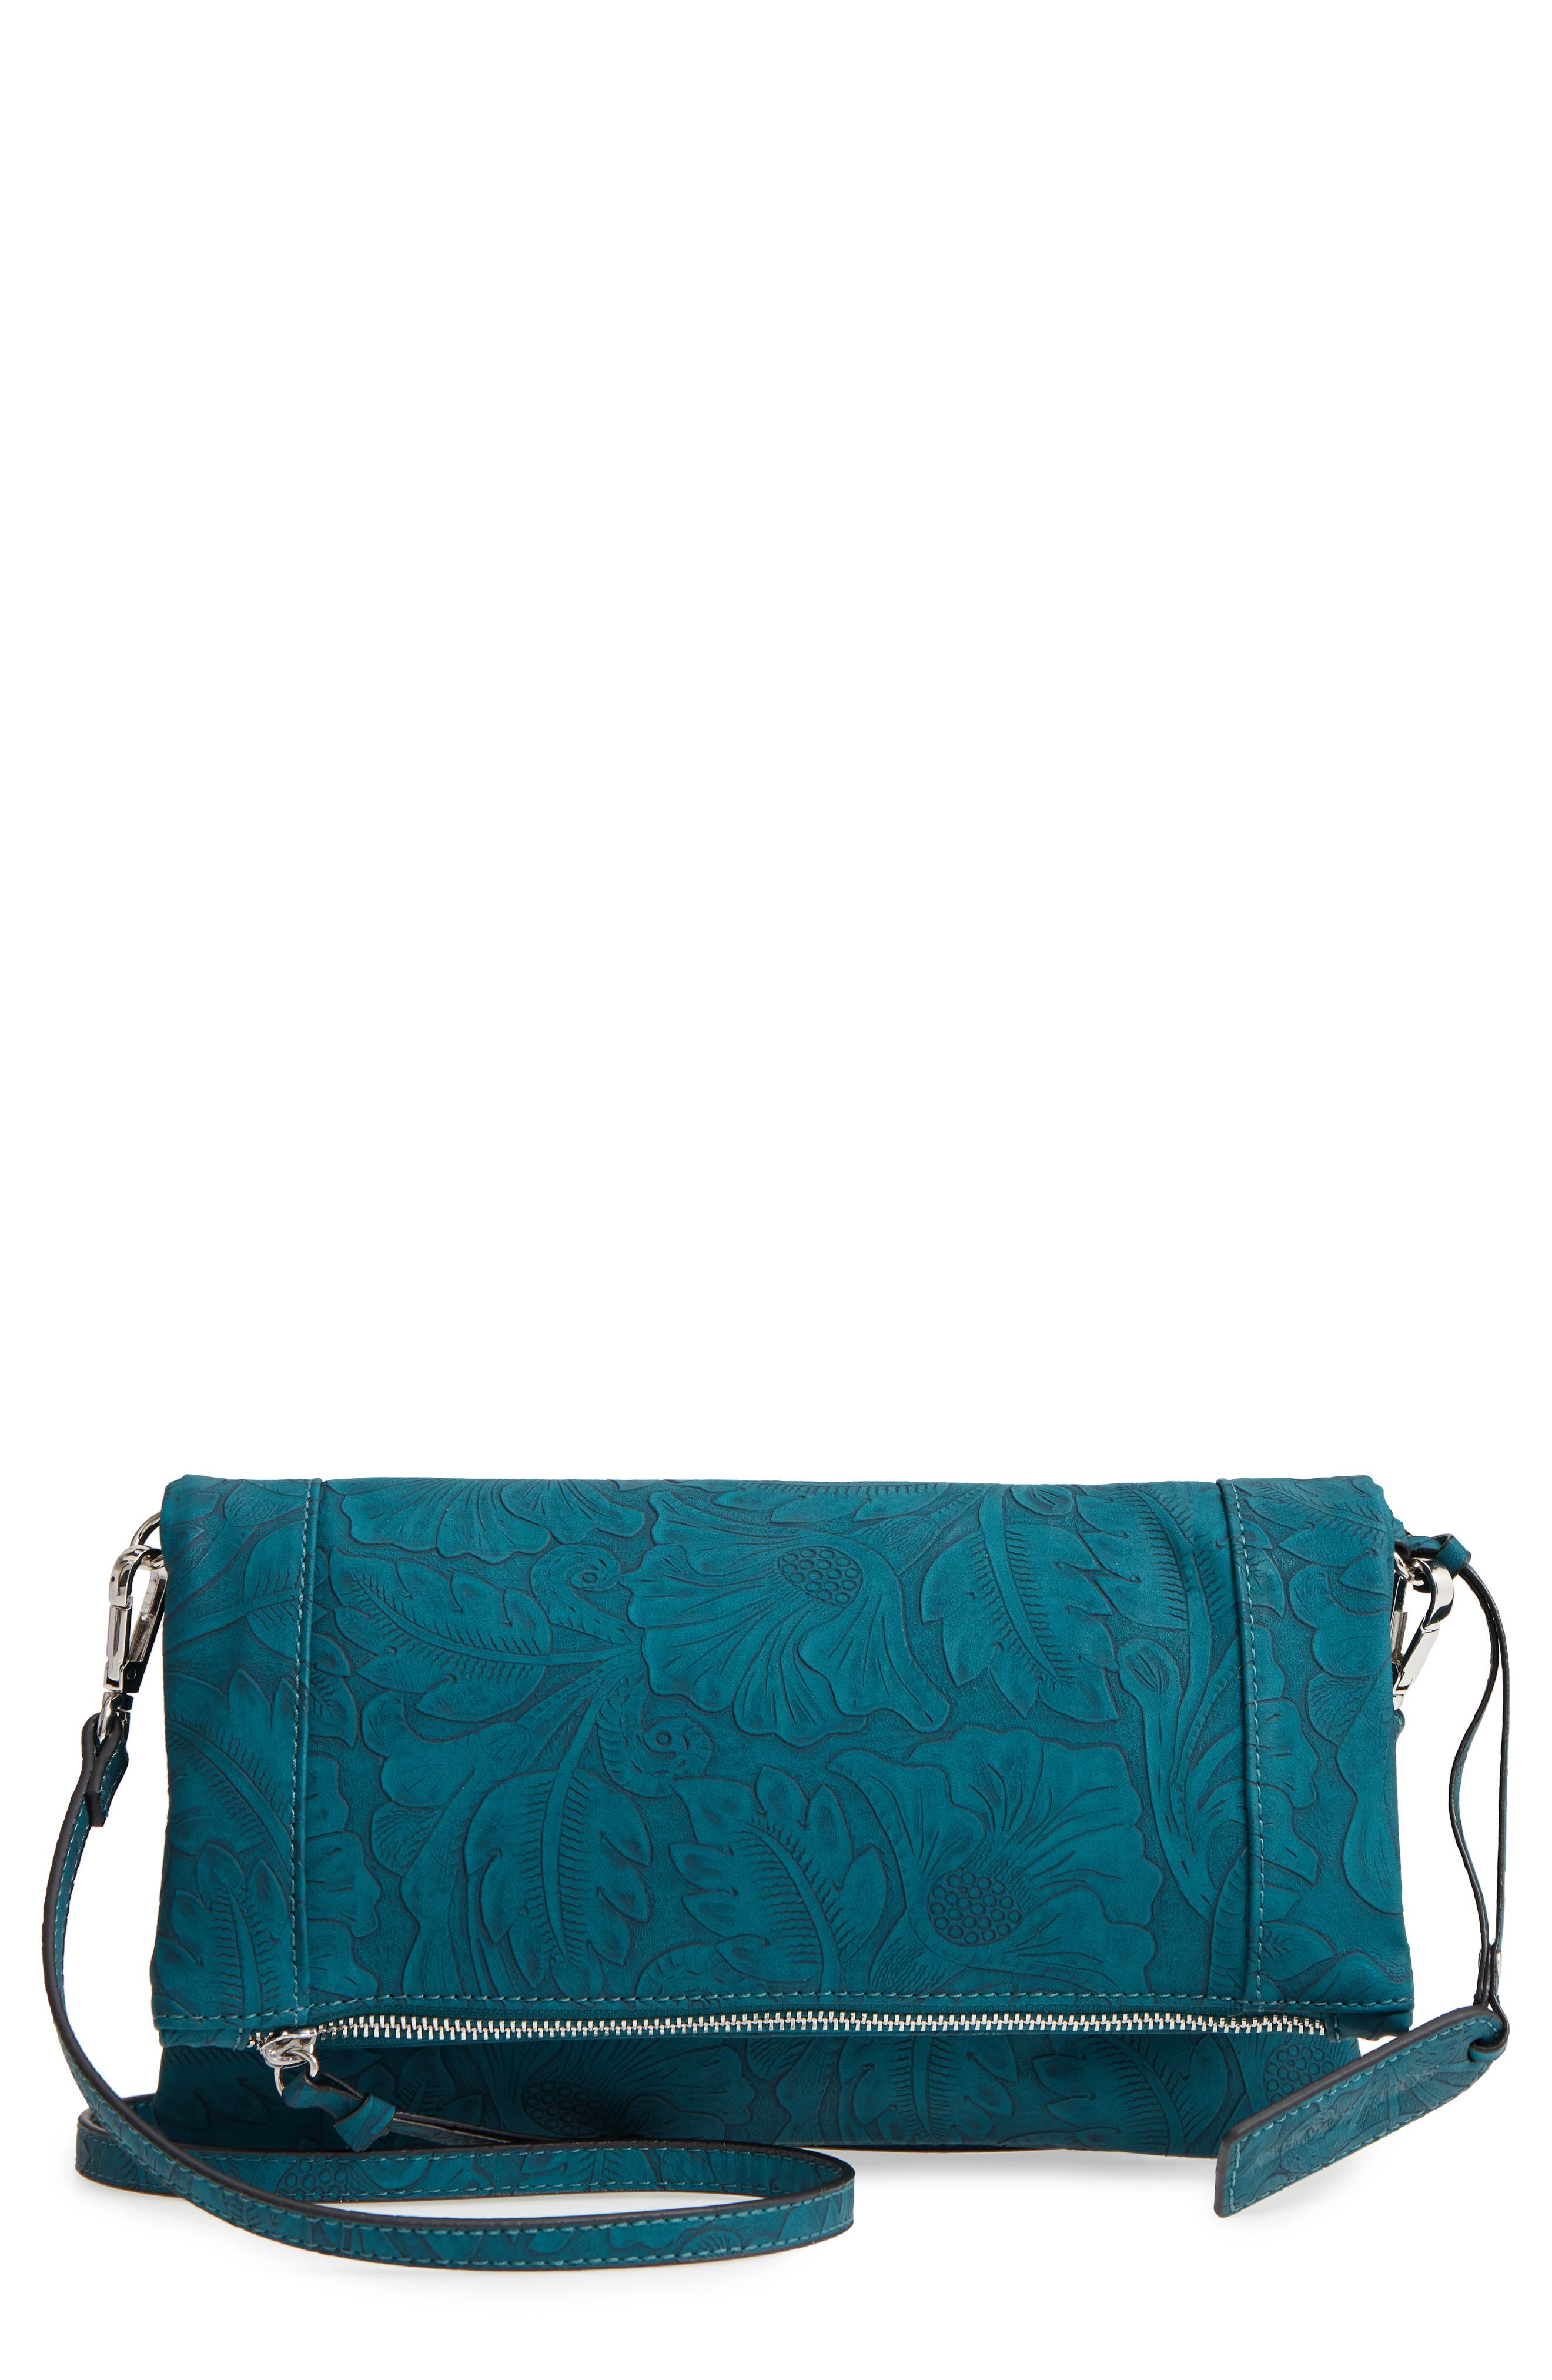 Tooled Faux Leather Foldover Clutch,                         Main,                         color, Teal